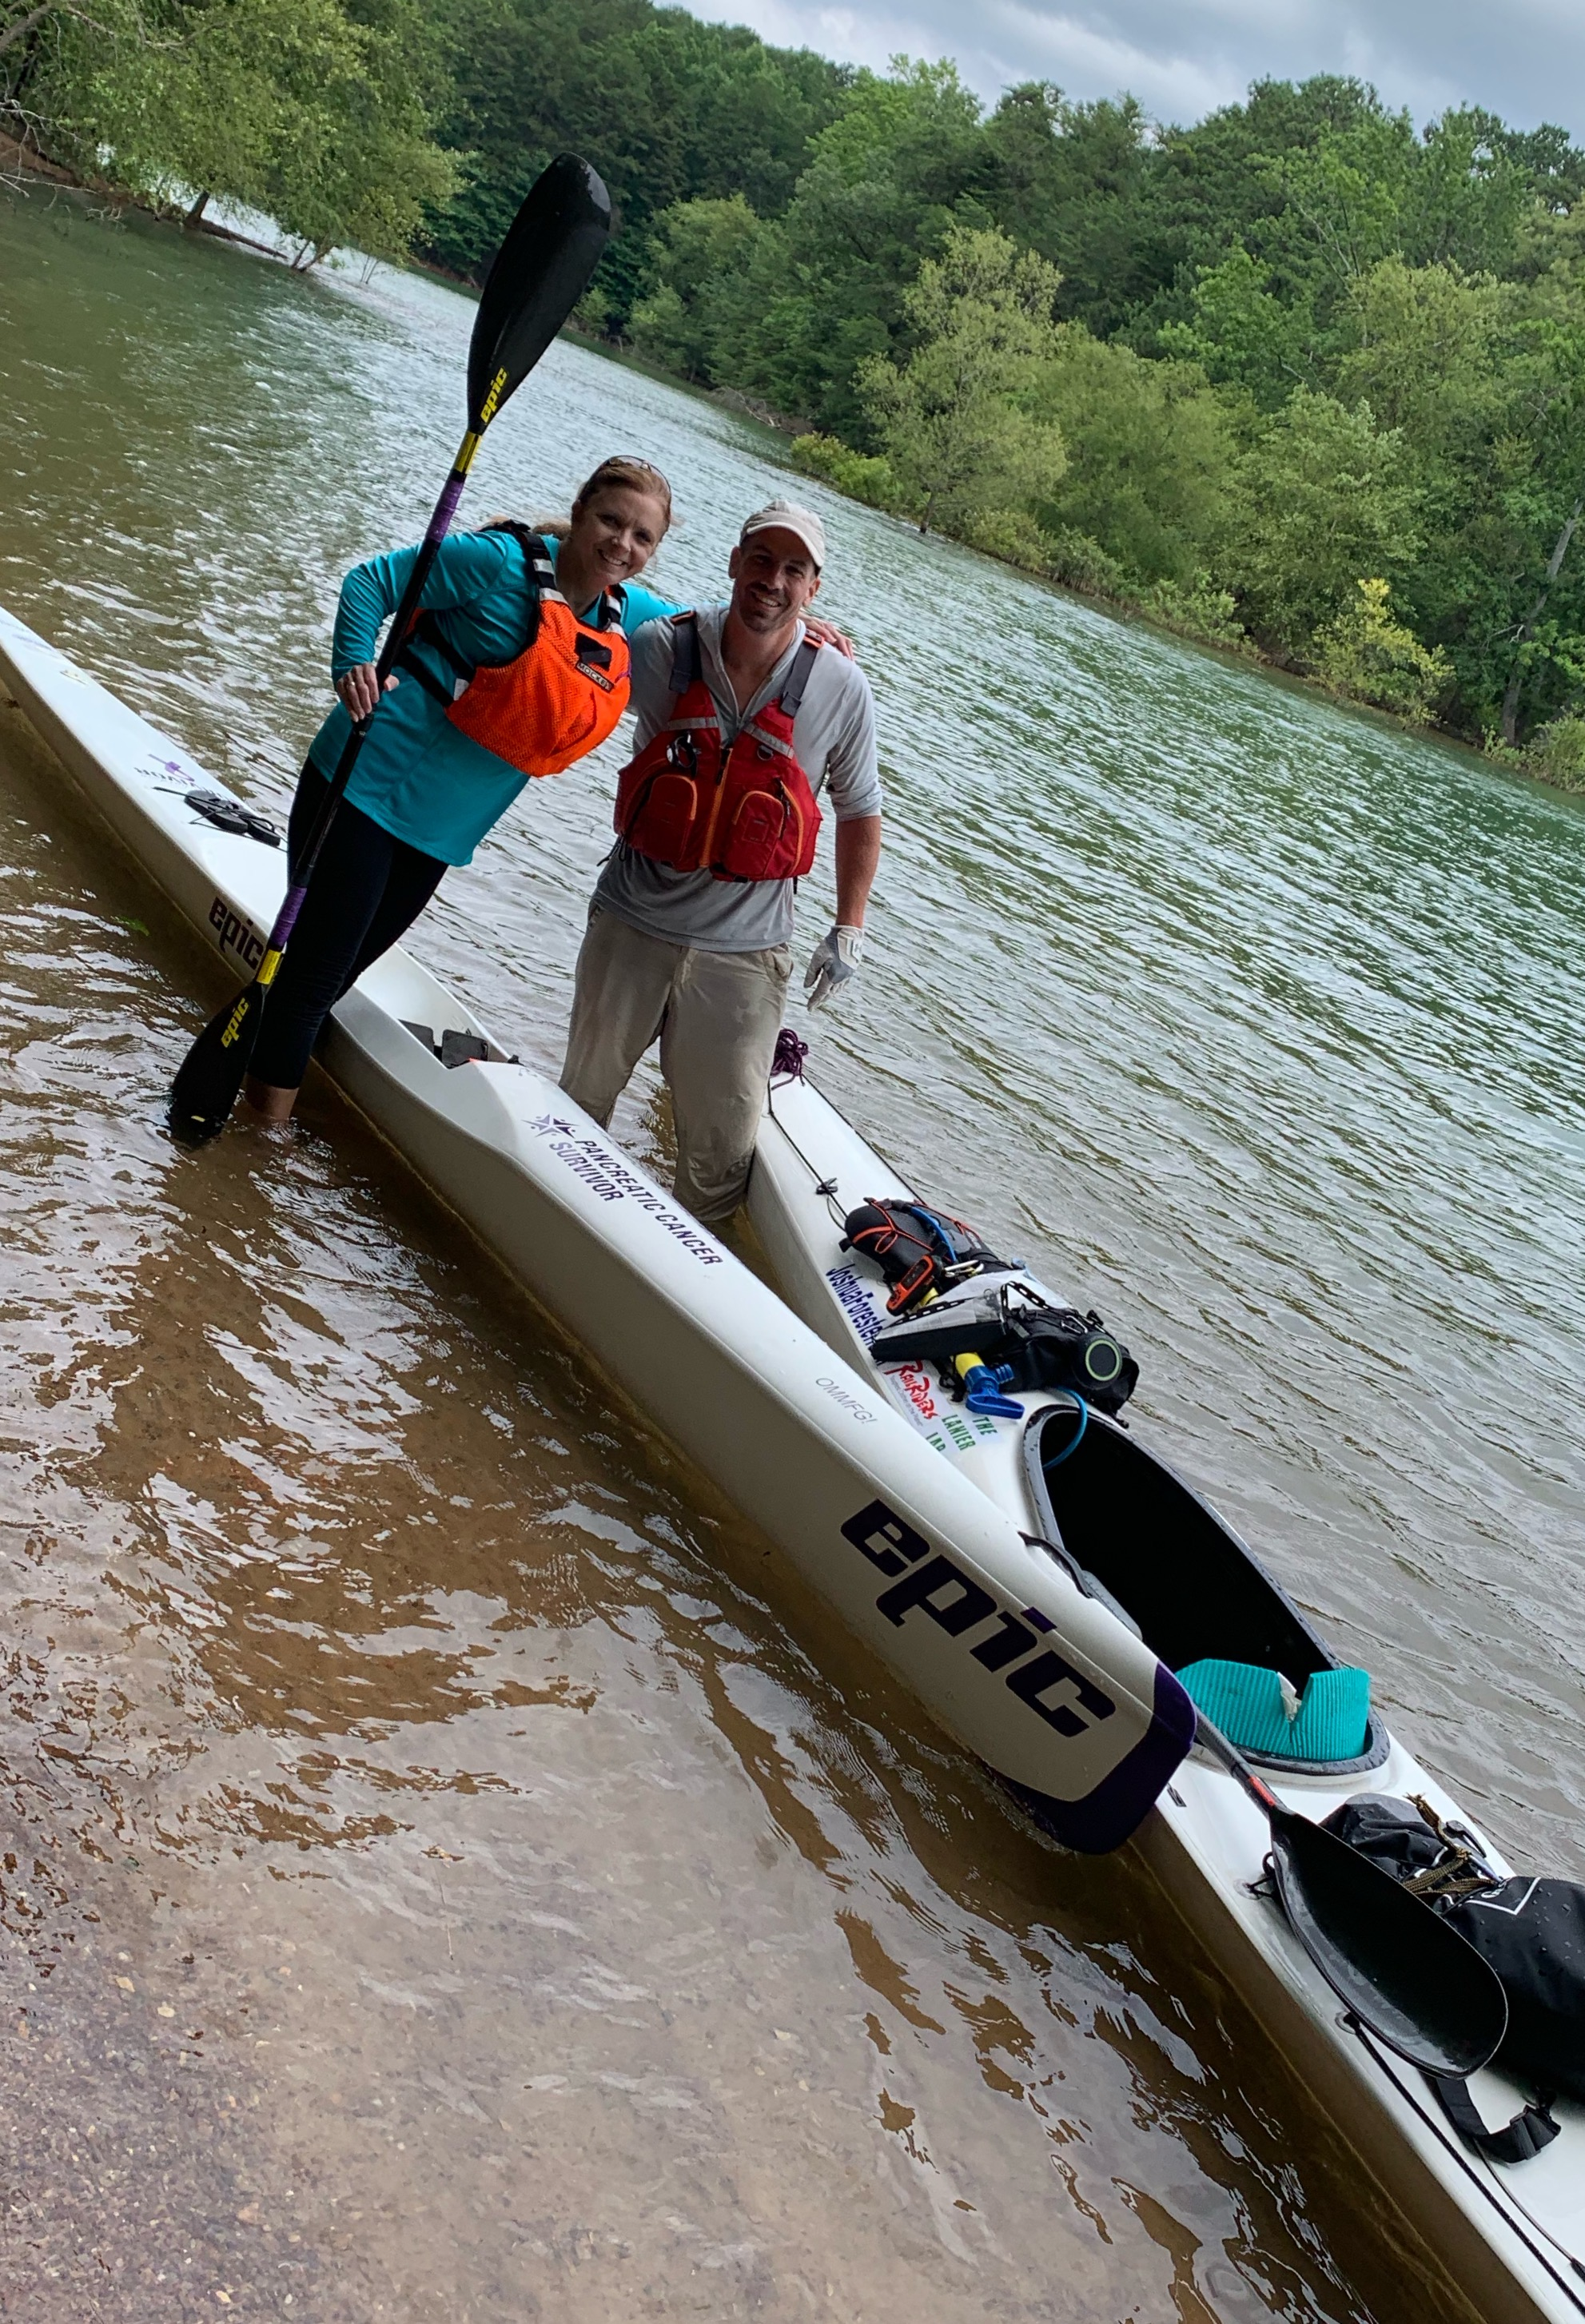 Joined by Dana Richardson the final day of The Lanier Lap